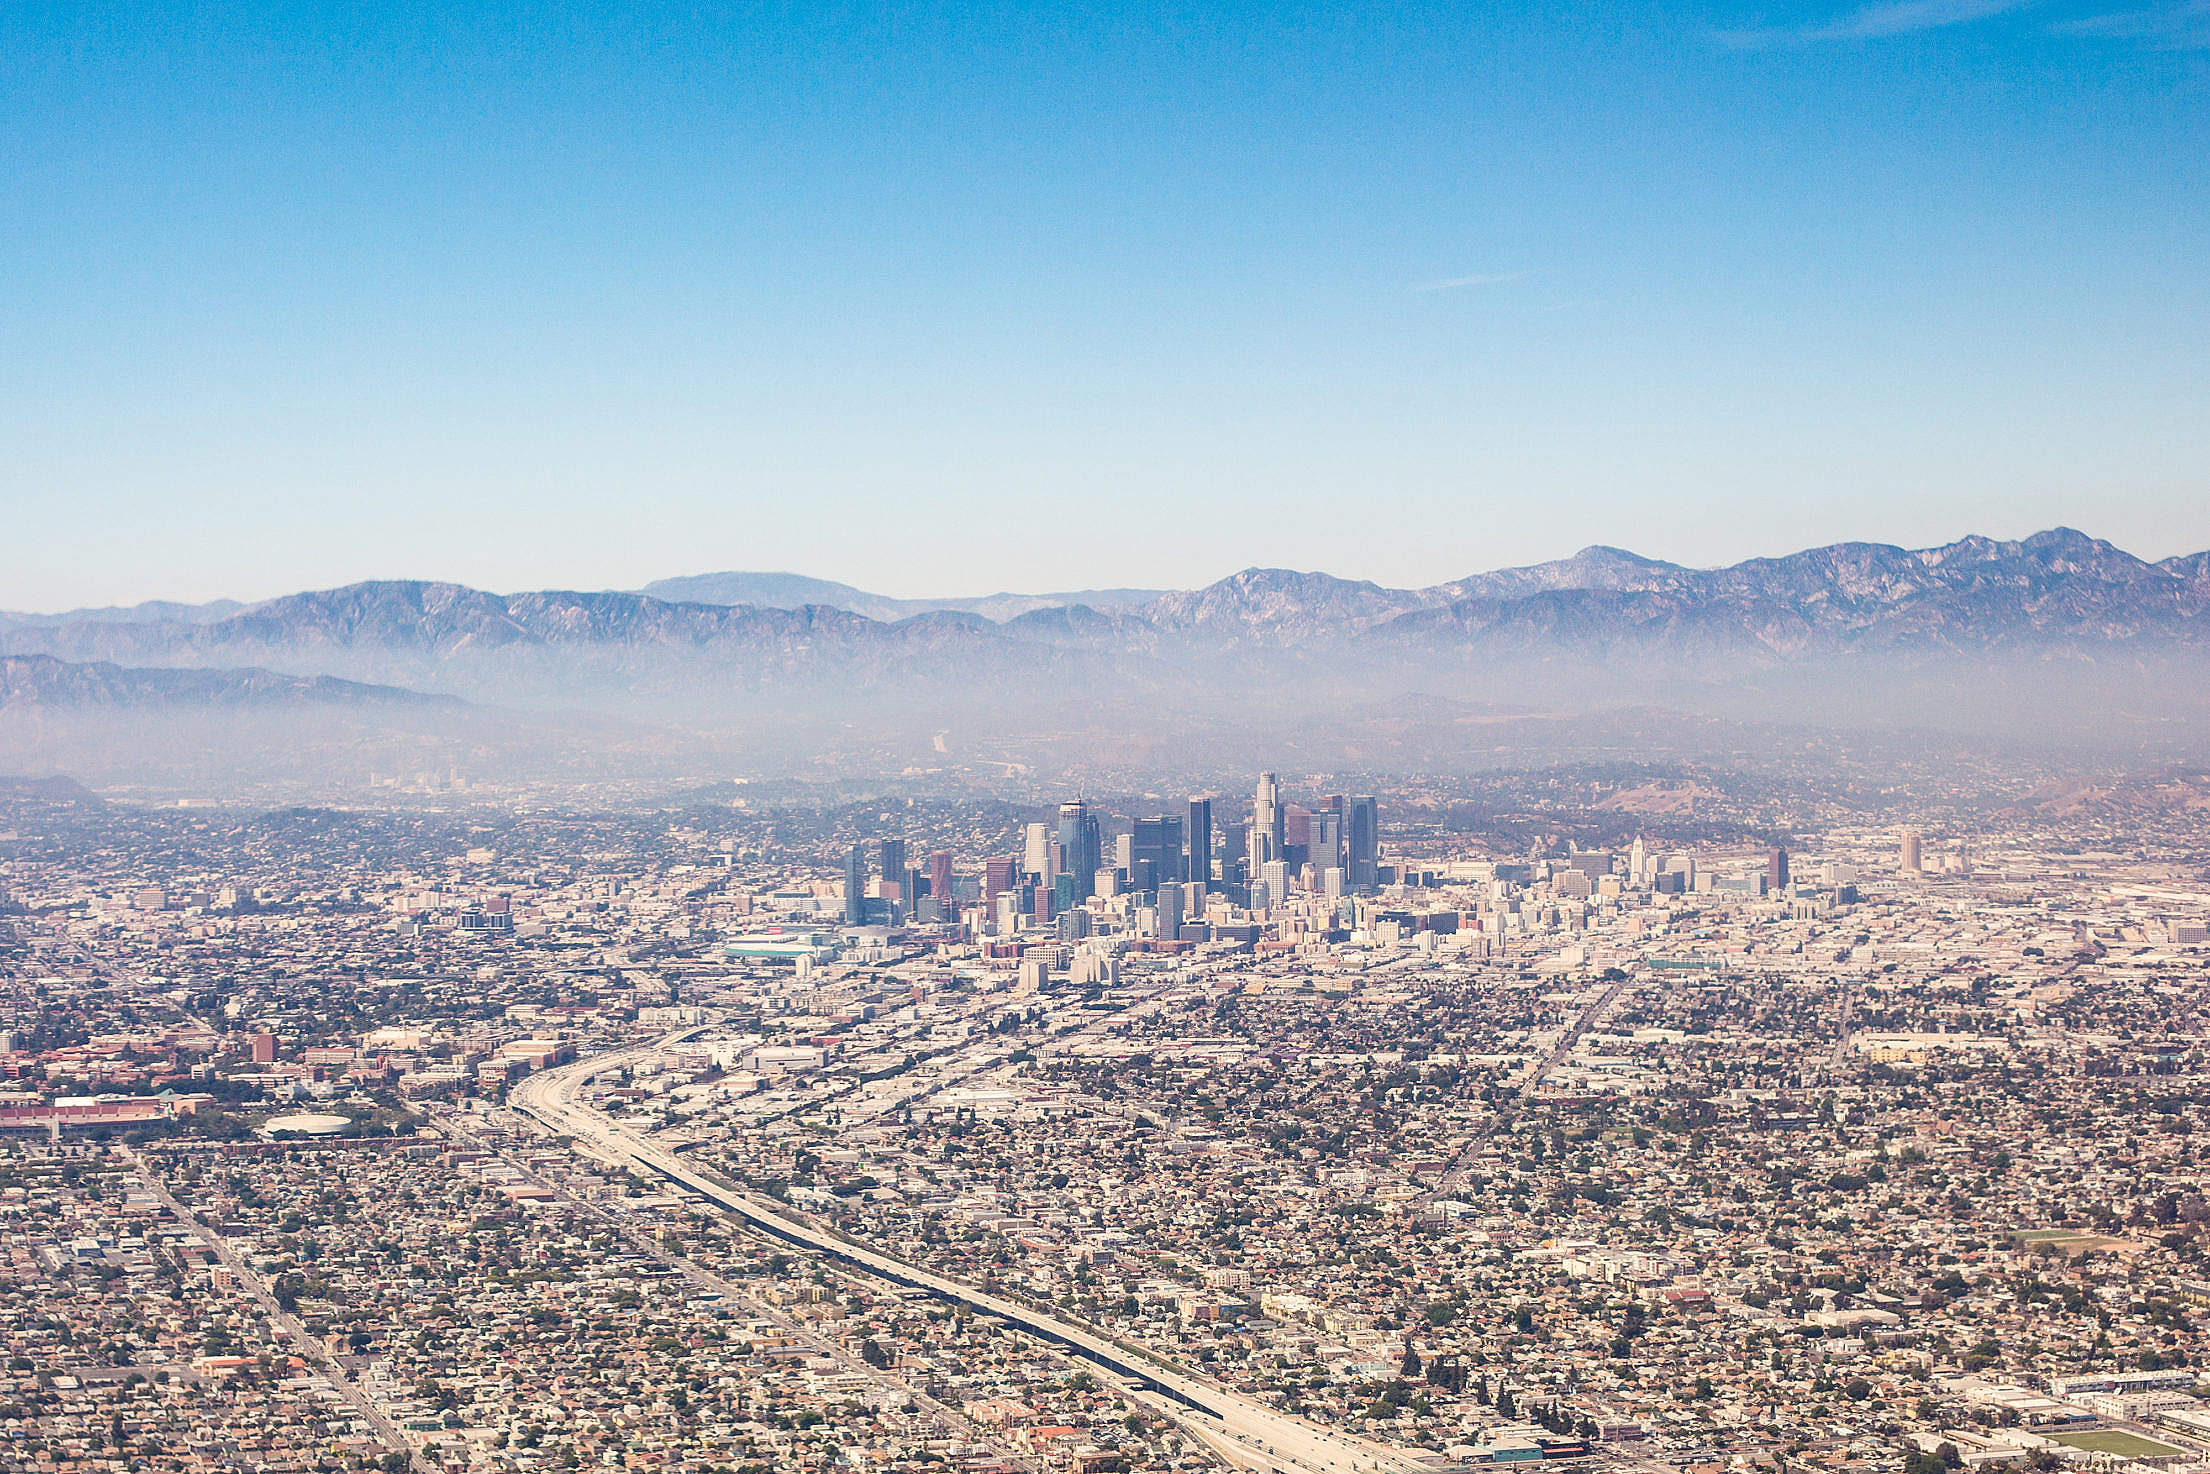 City of Los Angeles California Aerial View from Airplane Free Stock Photo